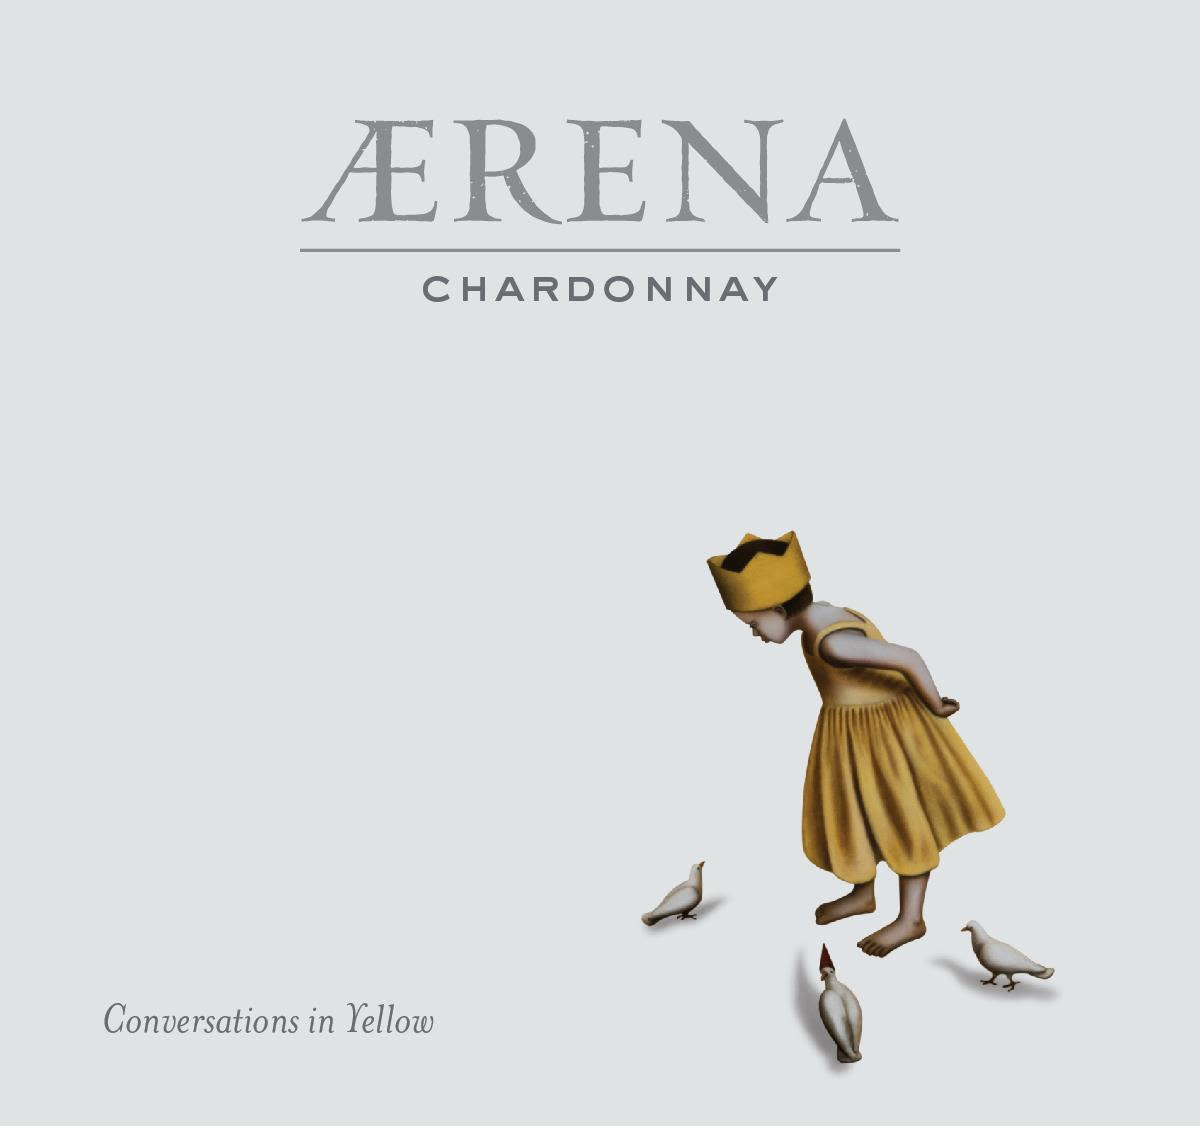 AERENA by Blackbird Vineyards Chardonnay 2019